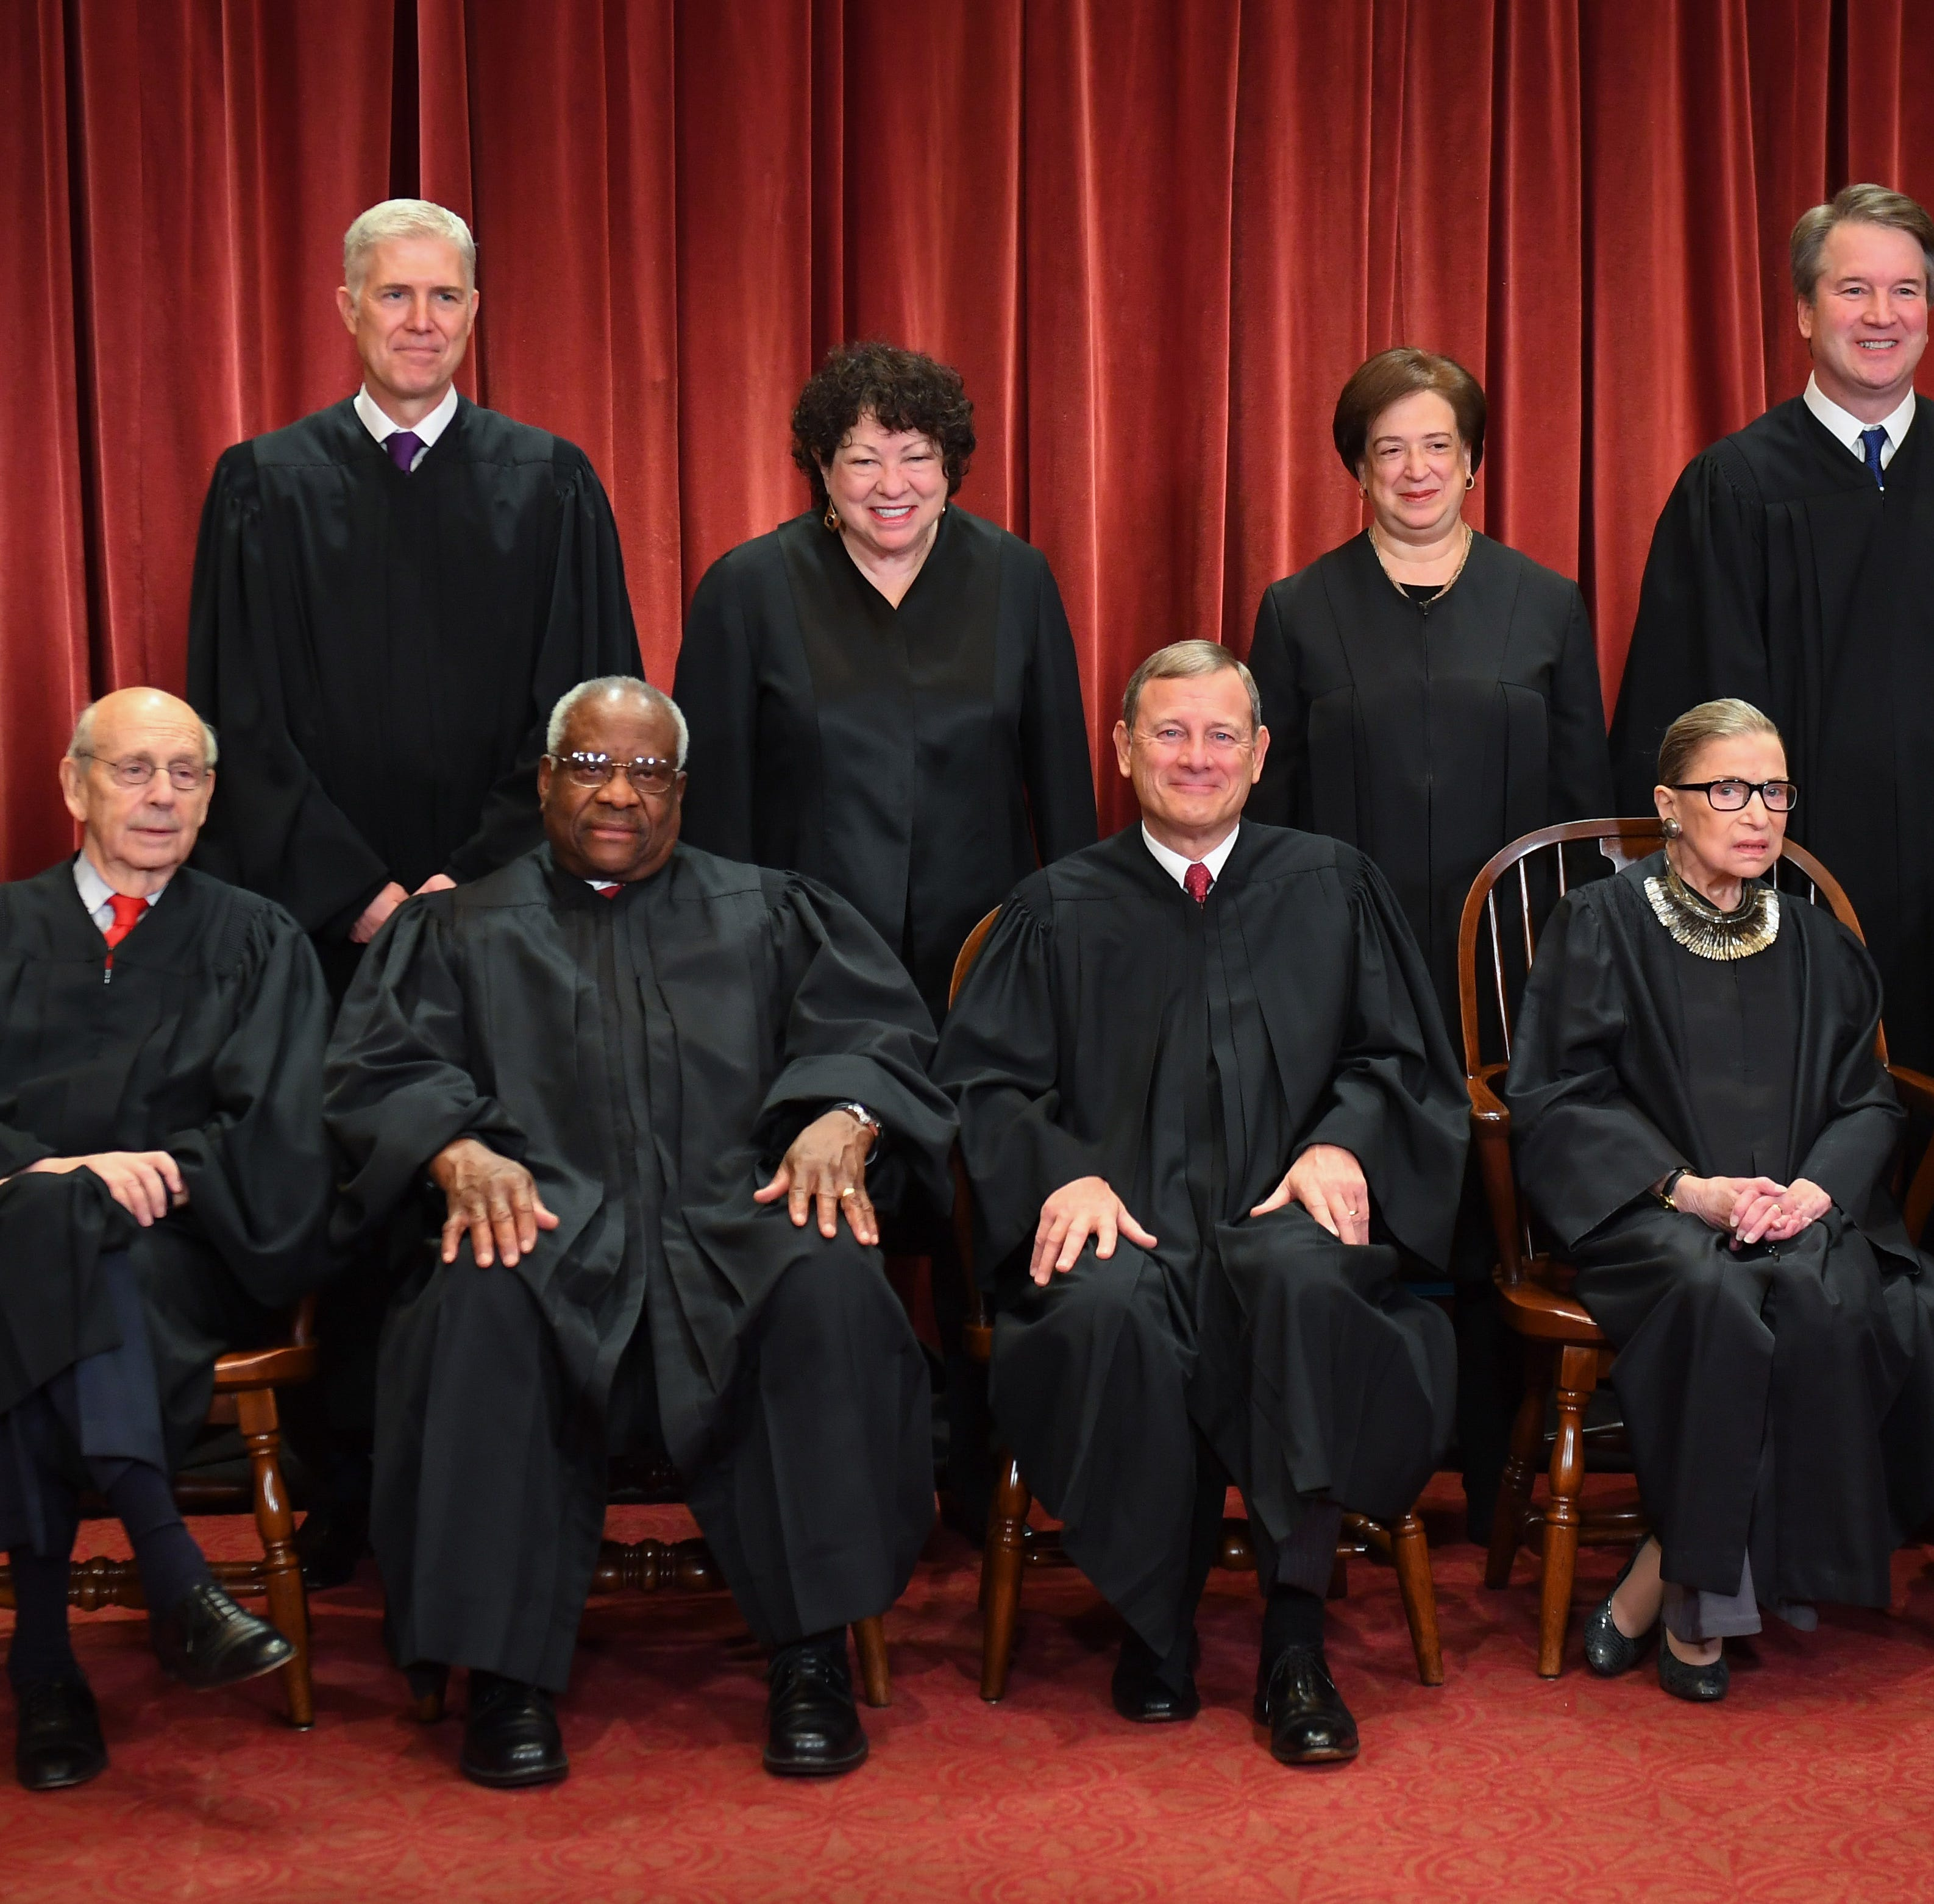 Why Democrats should hesitate to make over the Supreme Court